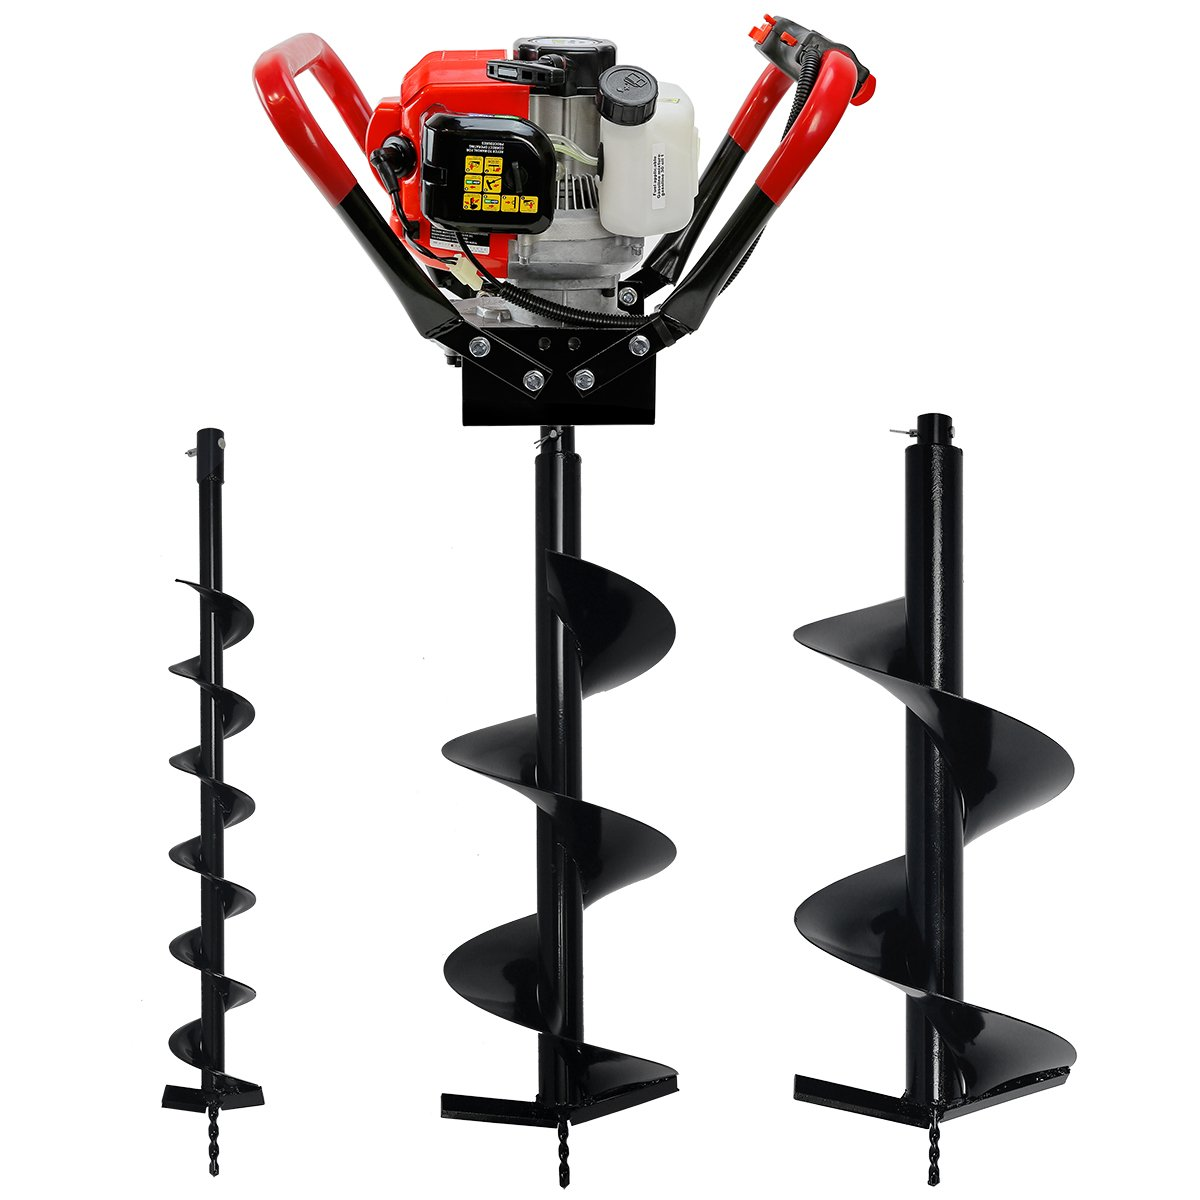 V-Type 55CC 2 Stroke Gas Posthole Digger One Man Auger (Digger + 4 10 12Bits) XtremepowerUS